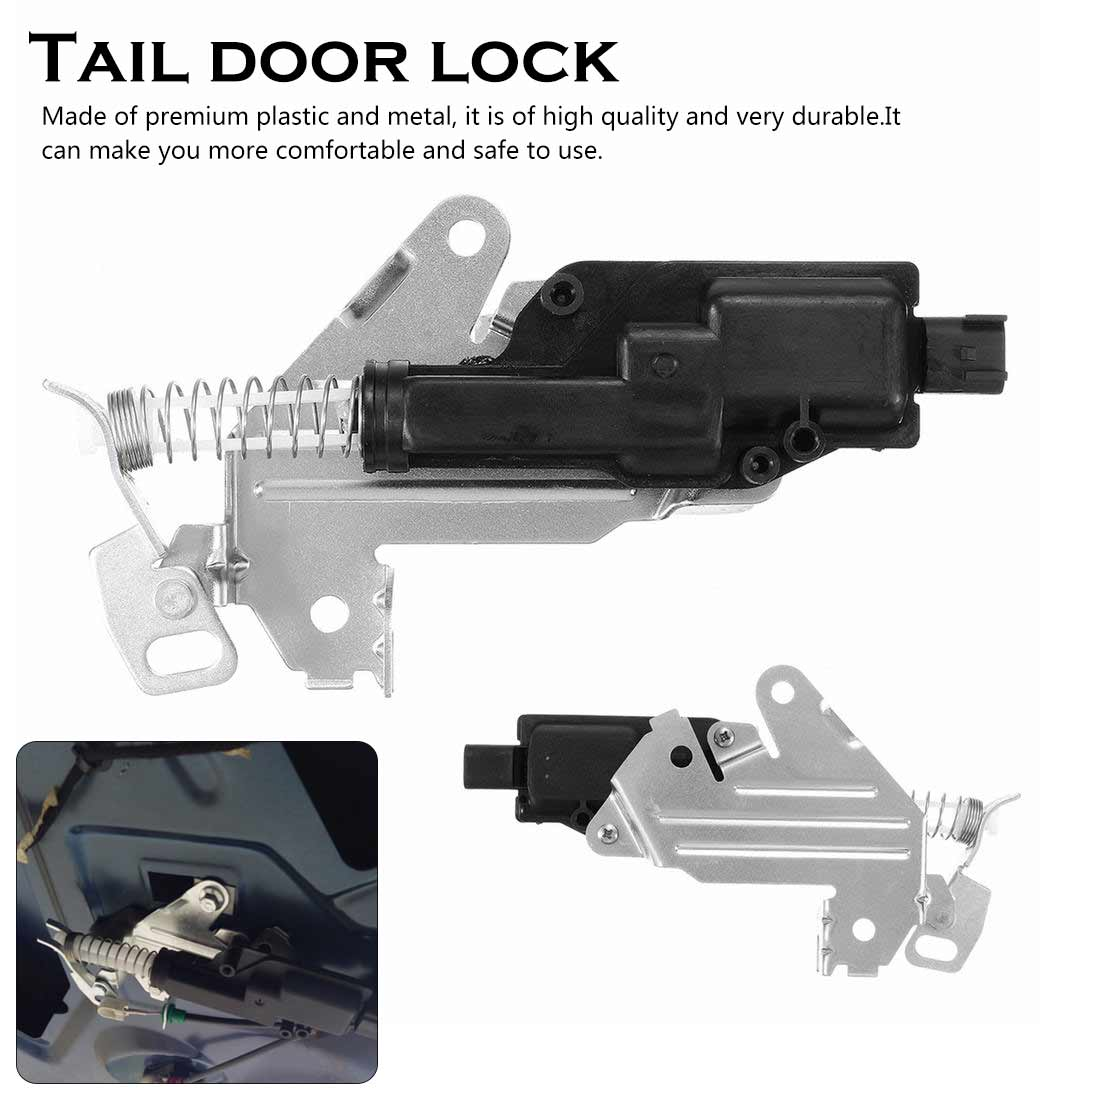 FOR FORD FUSION FIESTA BOOT TRUNK LOCK LATCH CATCH MOTOR ACTUATOR SOLENOID Black